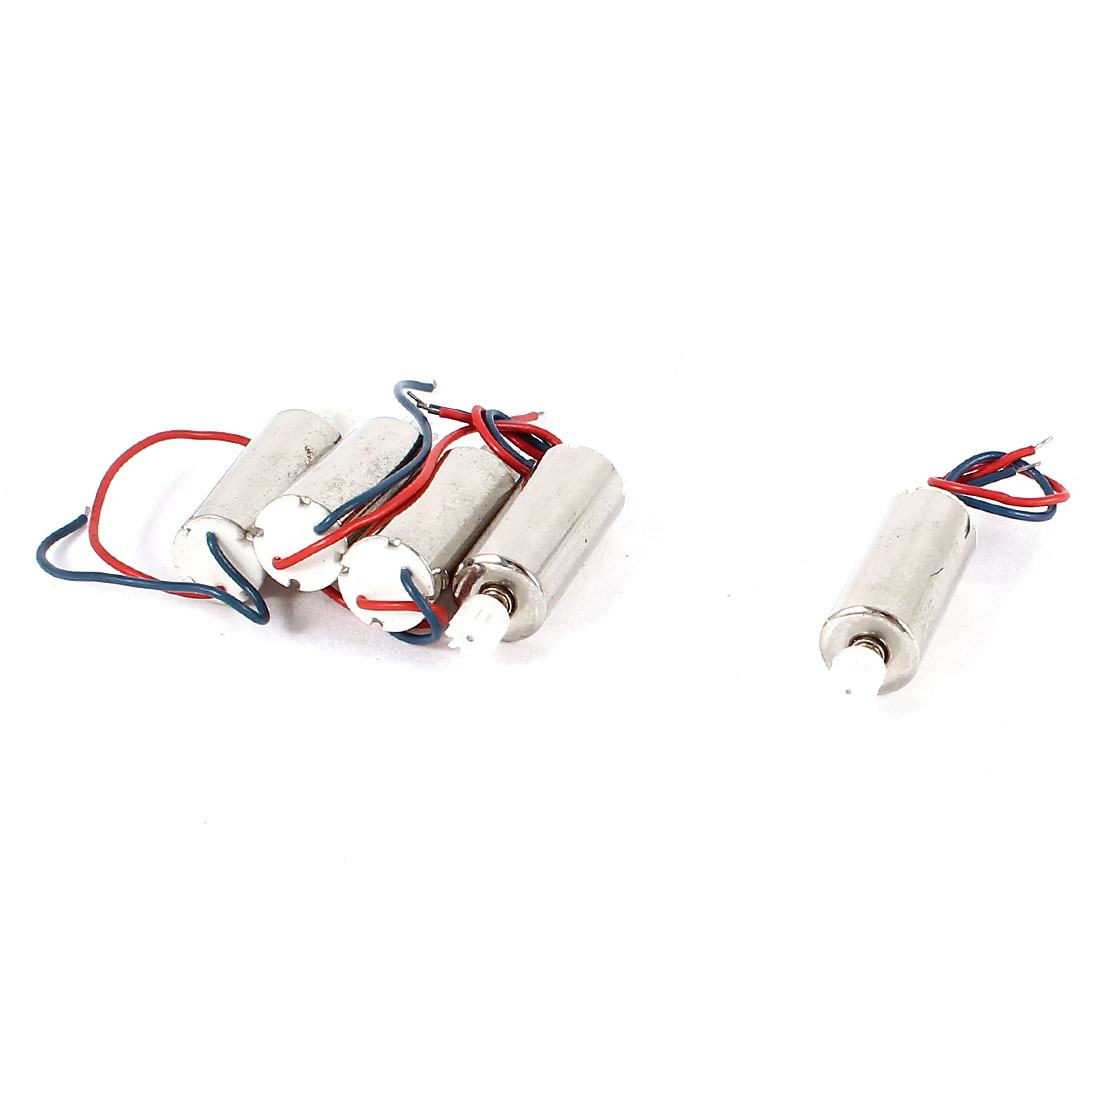 5 Pcs DC 3V 60-70mA 20000-40000RPM 7x16mm Coreless Greared Motor for RC Helicopter Toy